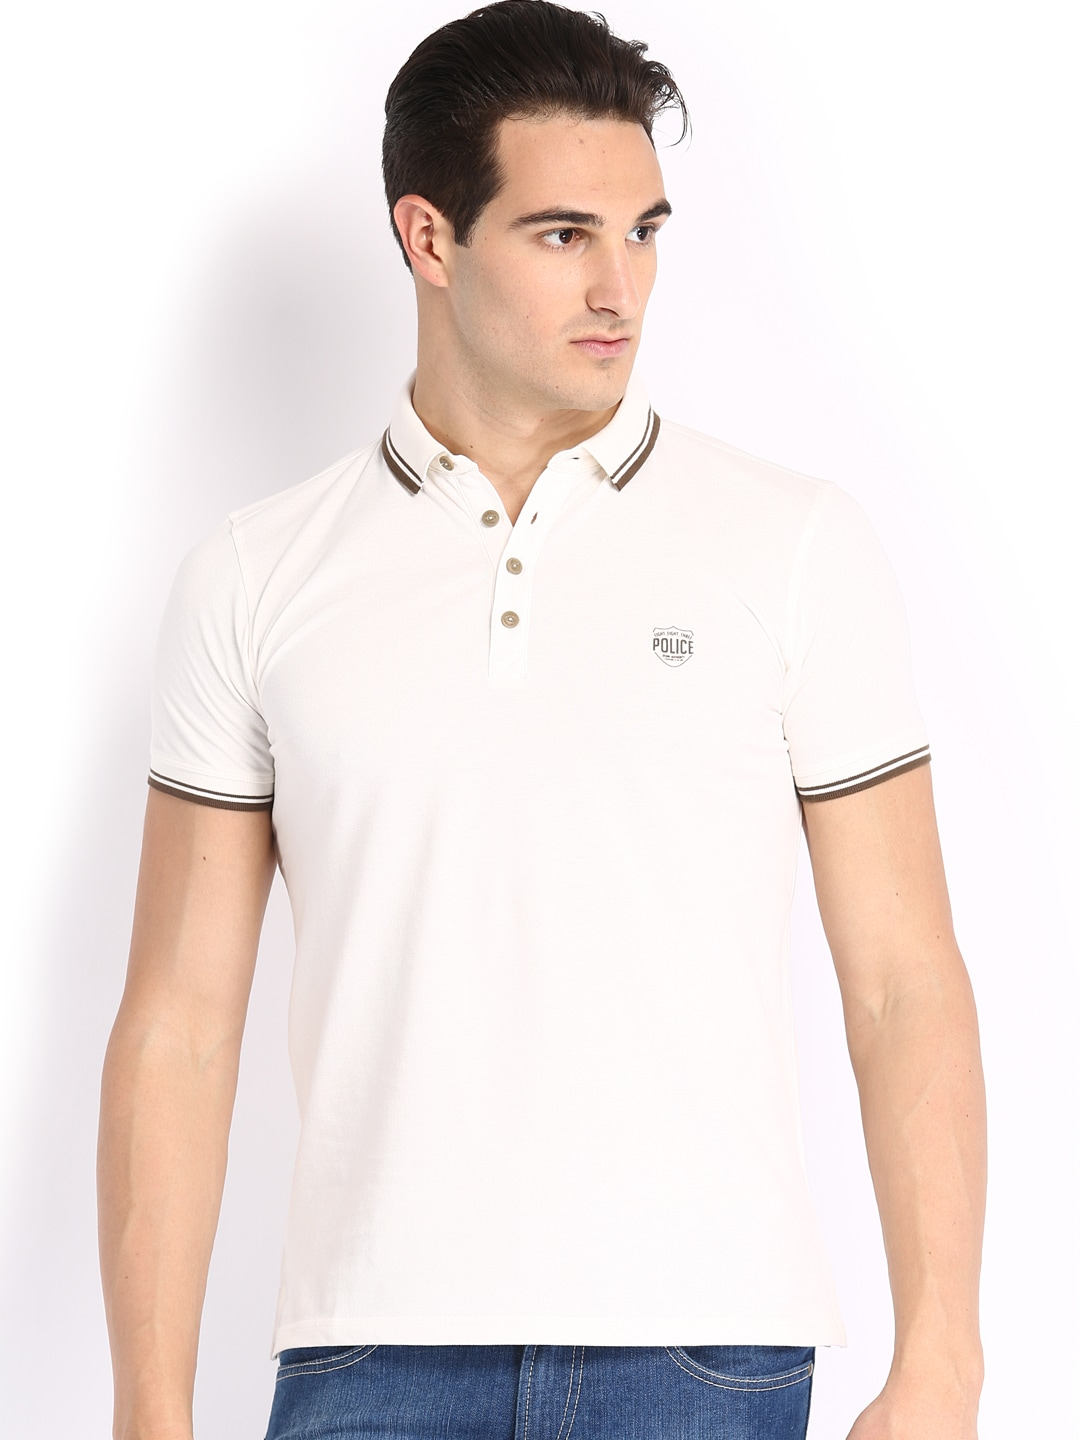 Police 883 Police Men White Polo T-Shirt (Multicolor)